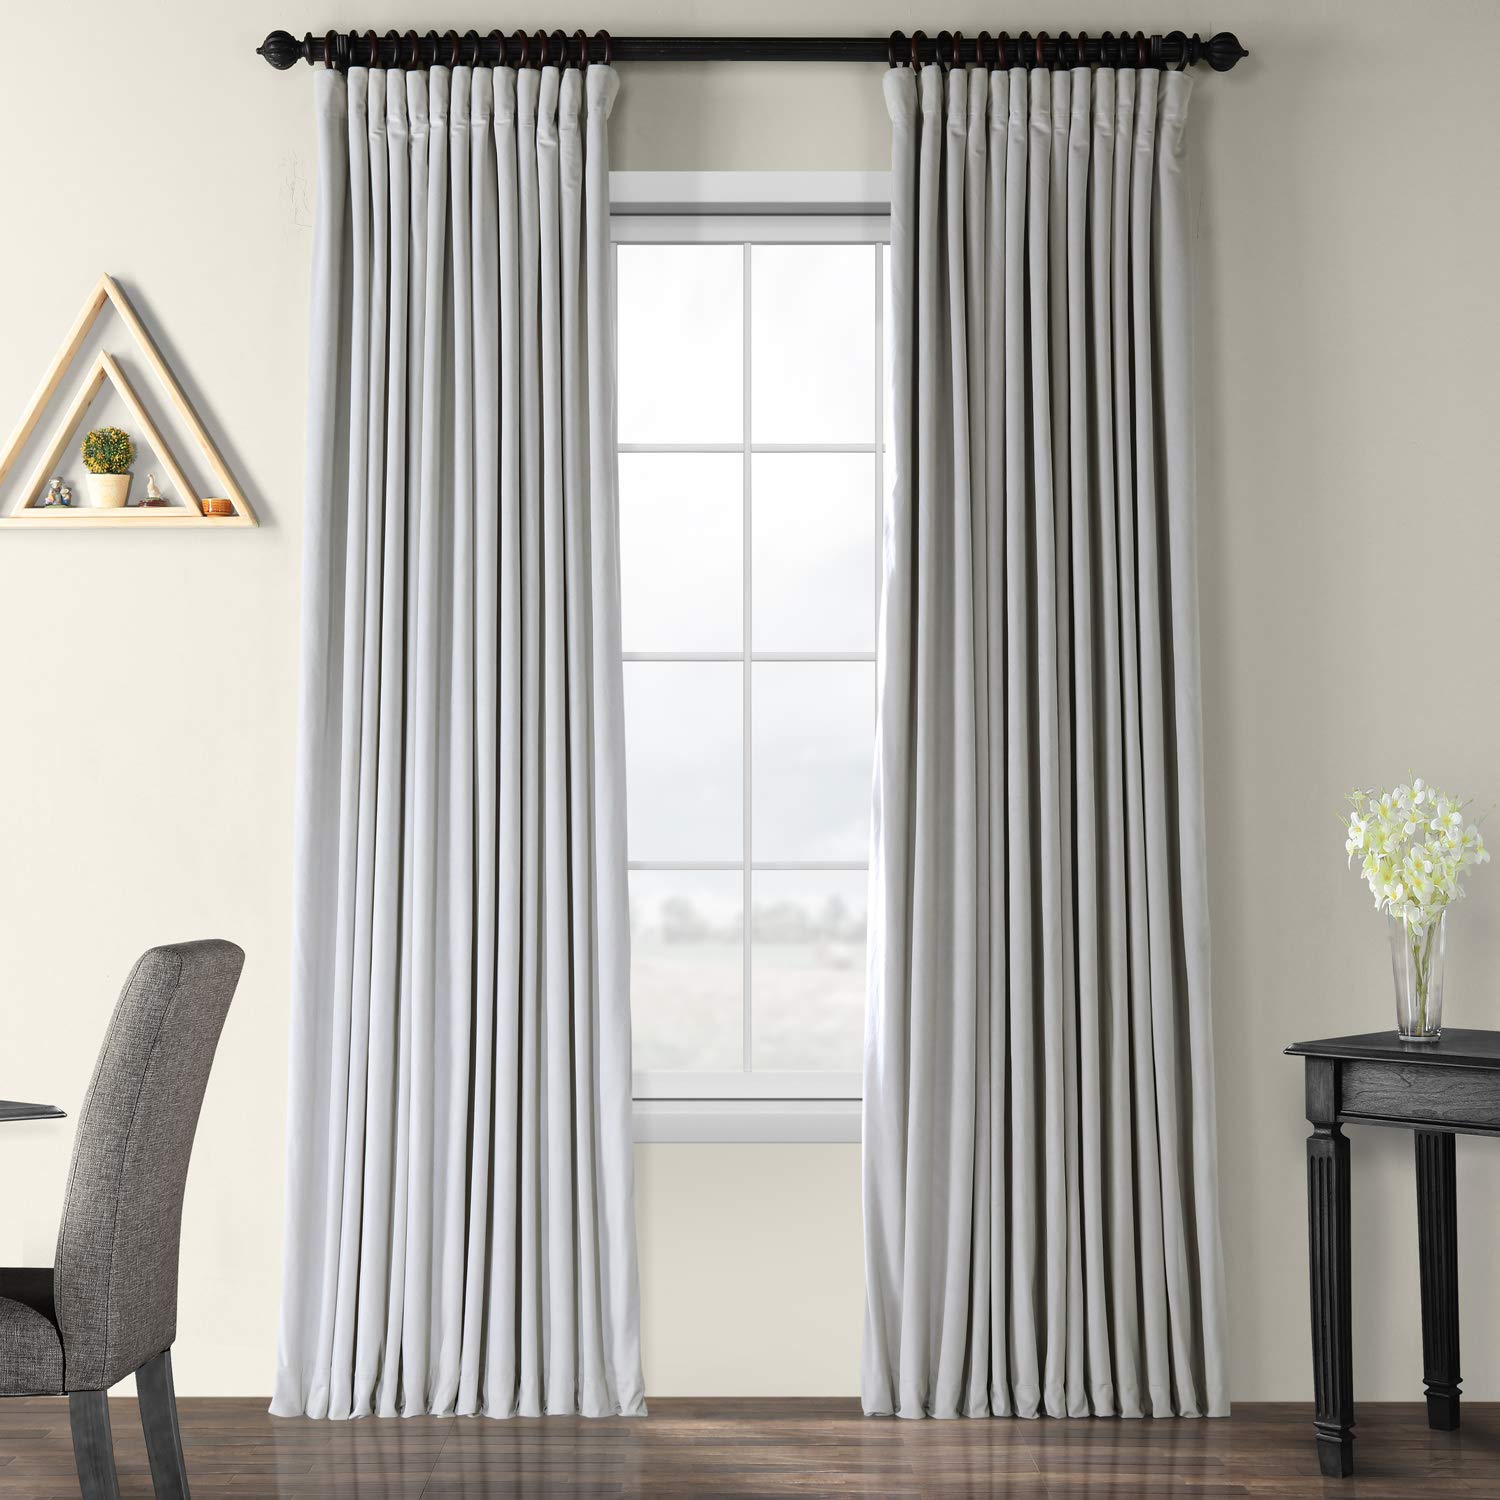 VPCH-VET160401-84 Signature Doublewide Blackout Velvet Curtain,Reflection Grey,100 X 84 by HPD Half Price Drapes